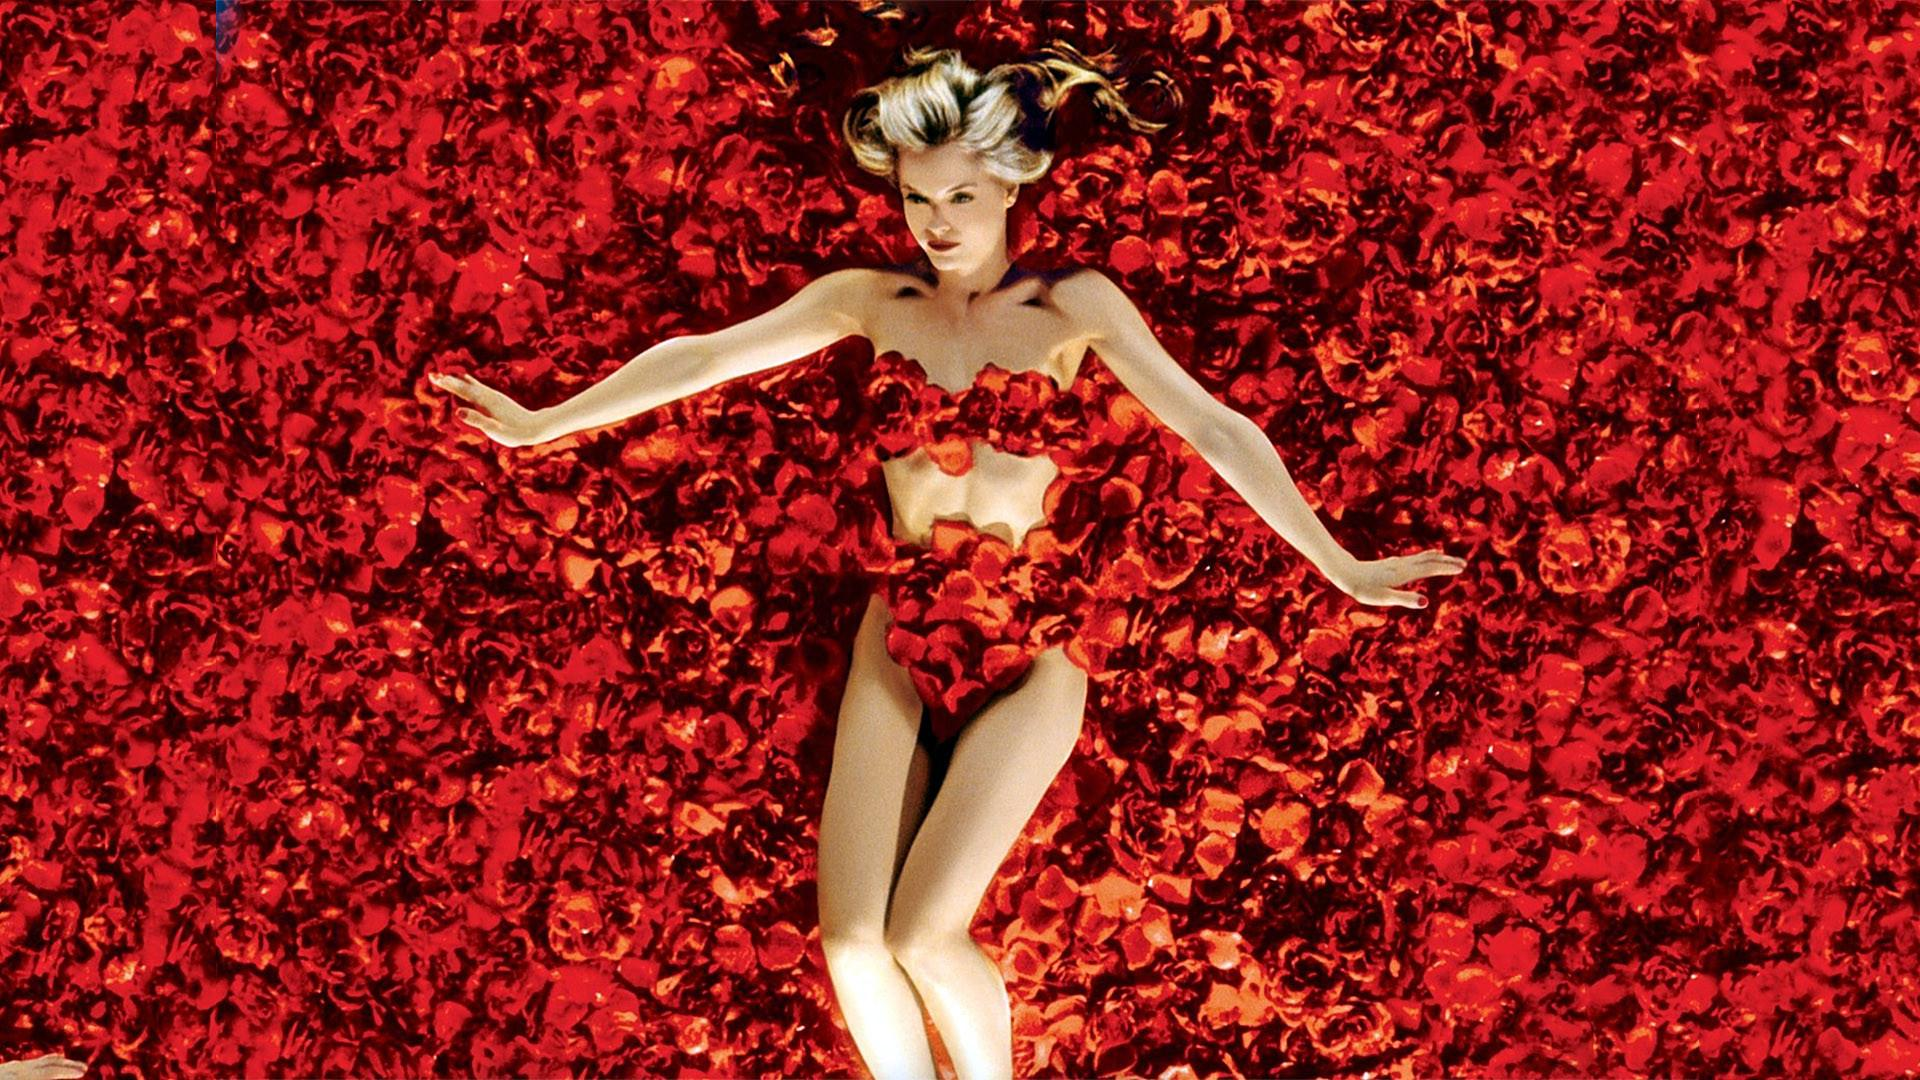 american beauty interpersonal conflict in film essay The movie the american beauty shows themes which are based on the whole society but other important themes originate from what the characters feel a bout themselves the theme of interpersonal conflict can best be described through the irony of the characters notion in that the characters reveal conflicting and clashing emotions.